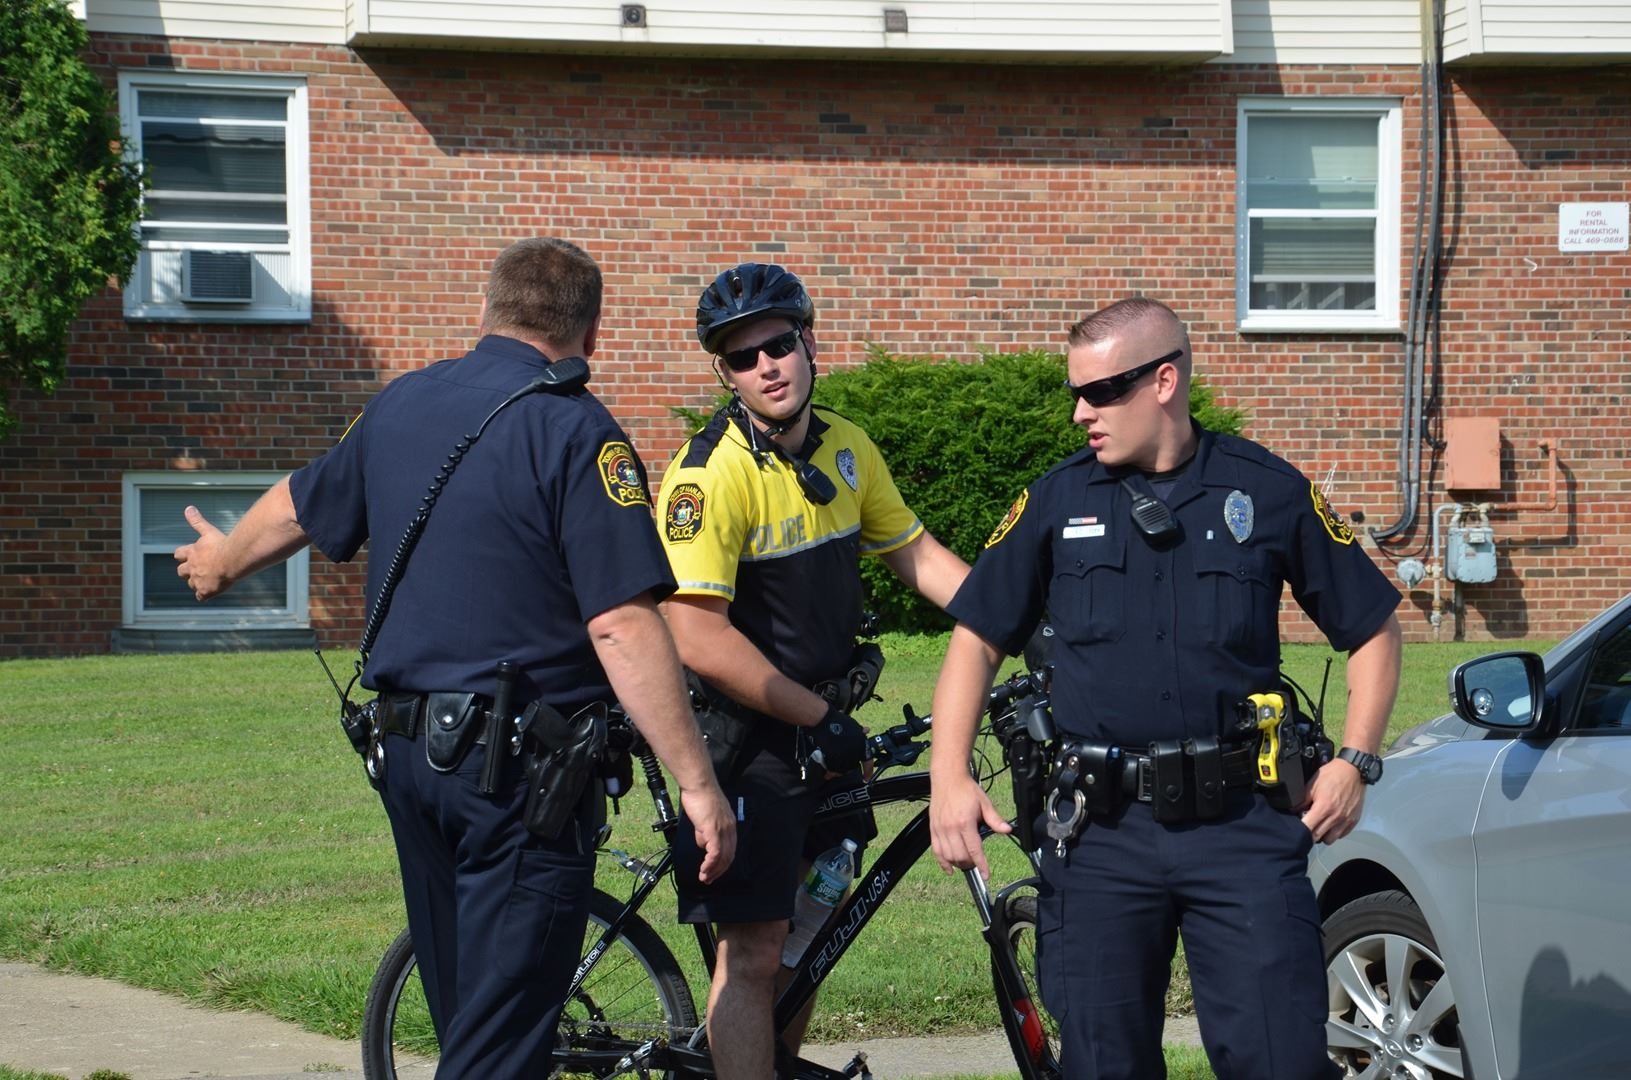 Officers stop to talk with a bike officer